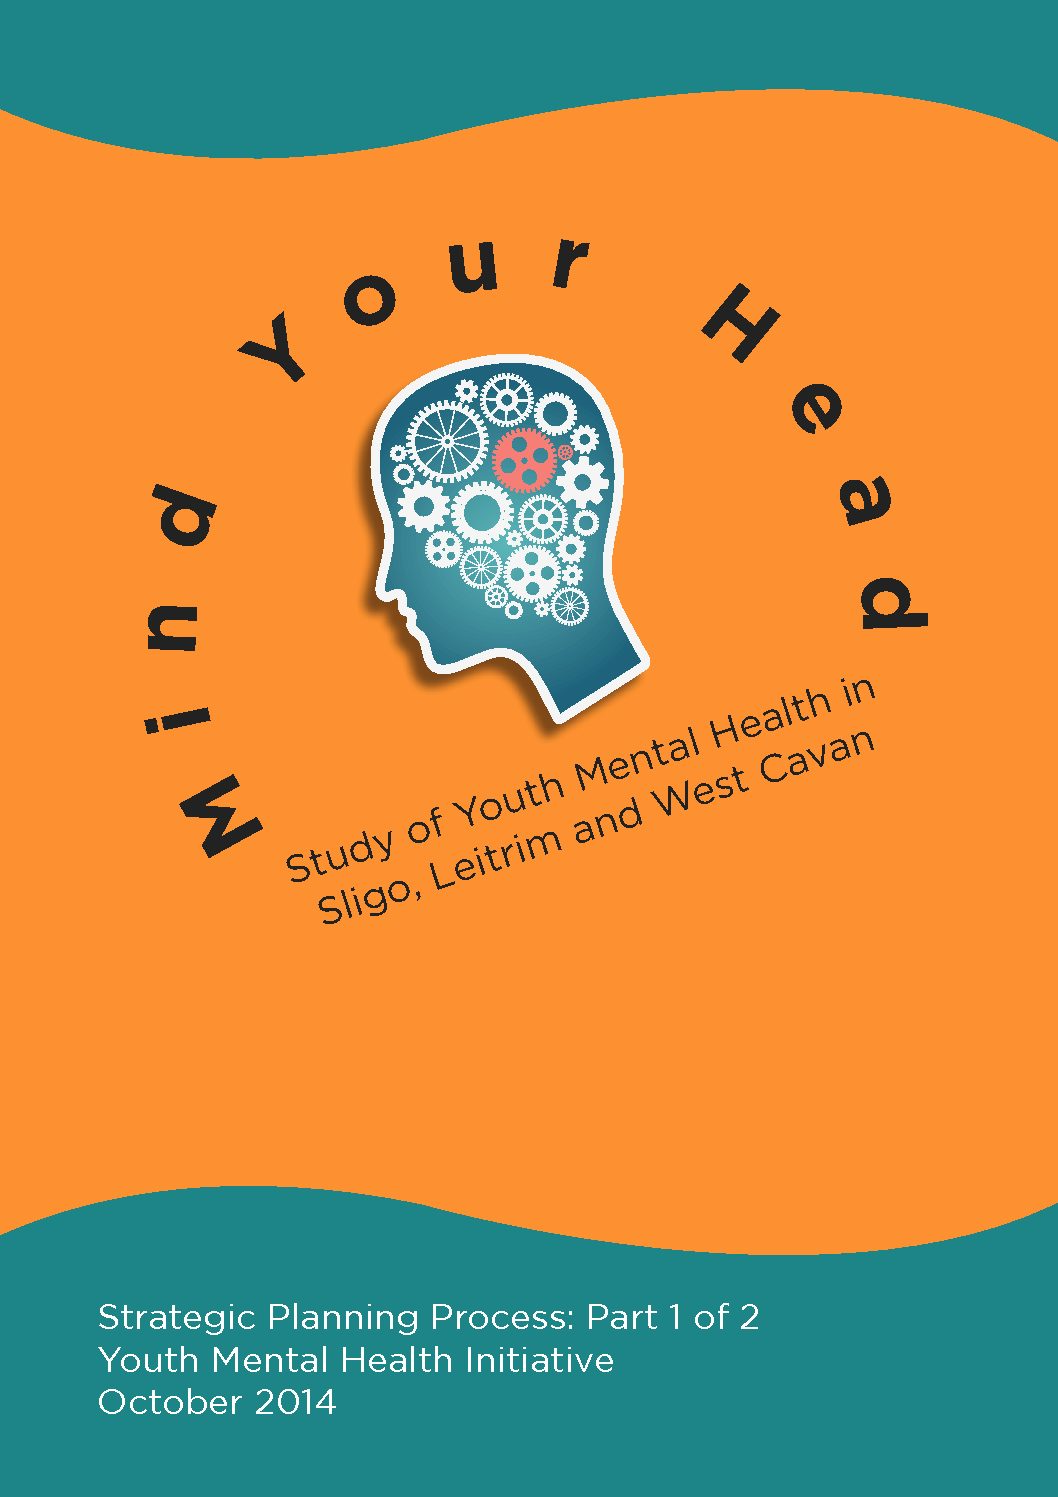 'Mind Your Head' study of young peoples' mental health